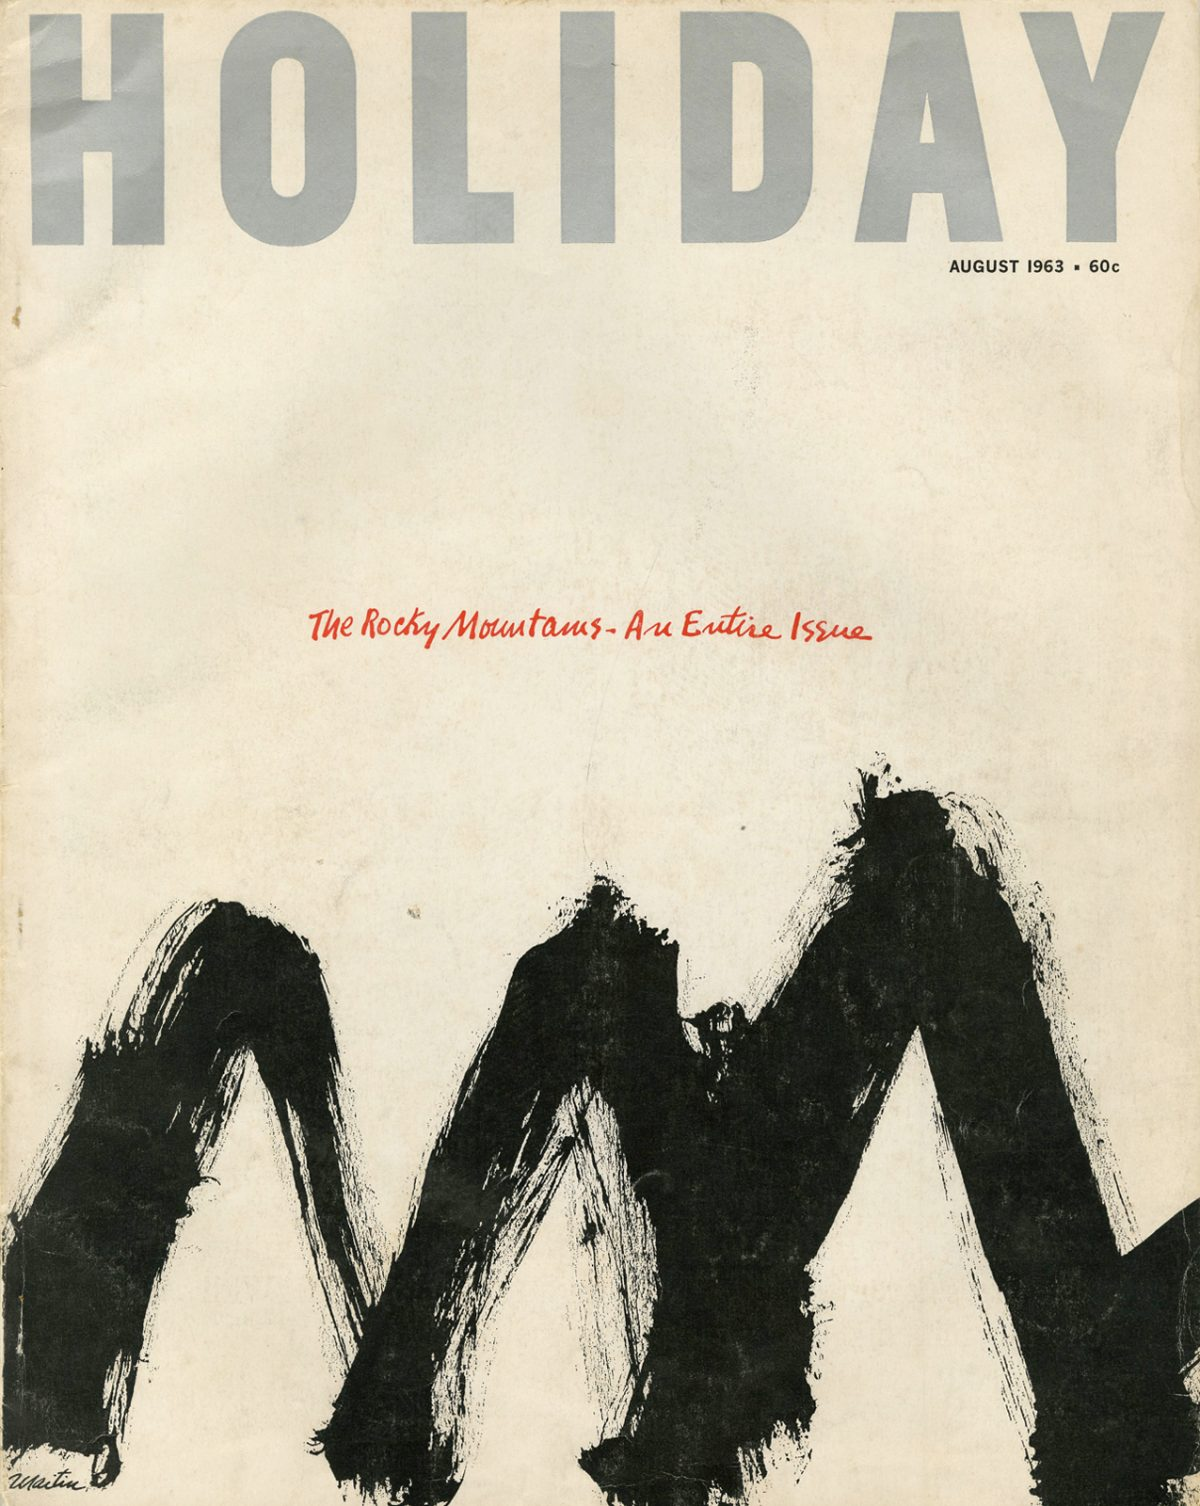 Holiday, August 1963. Cover artwork by Samuel Maitin.